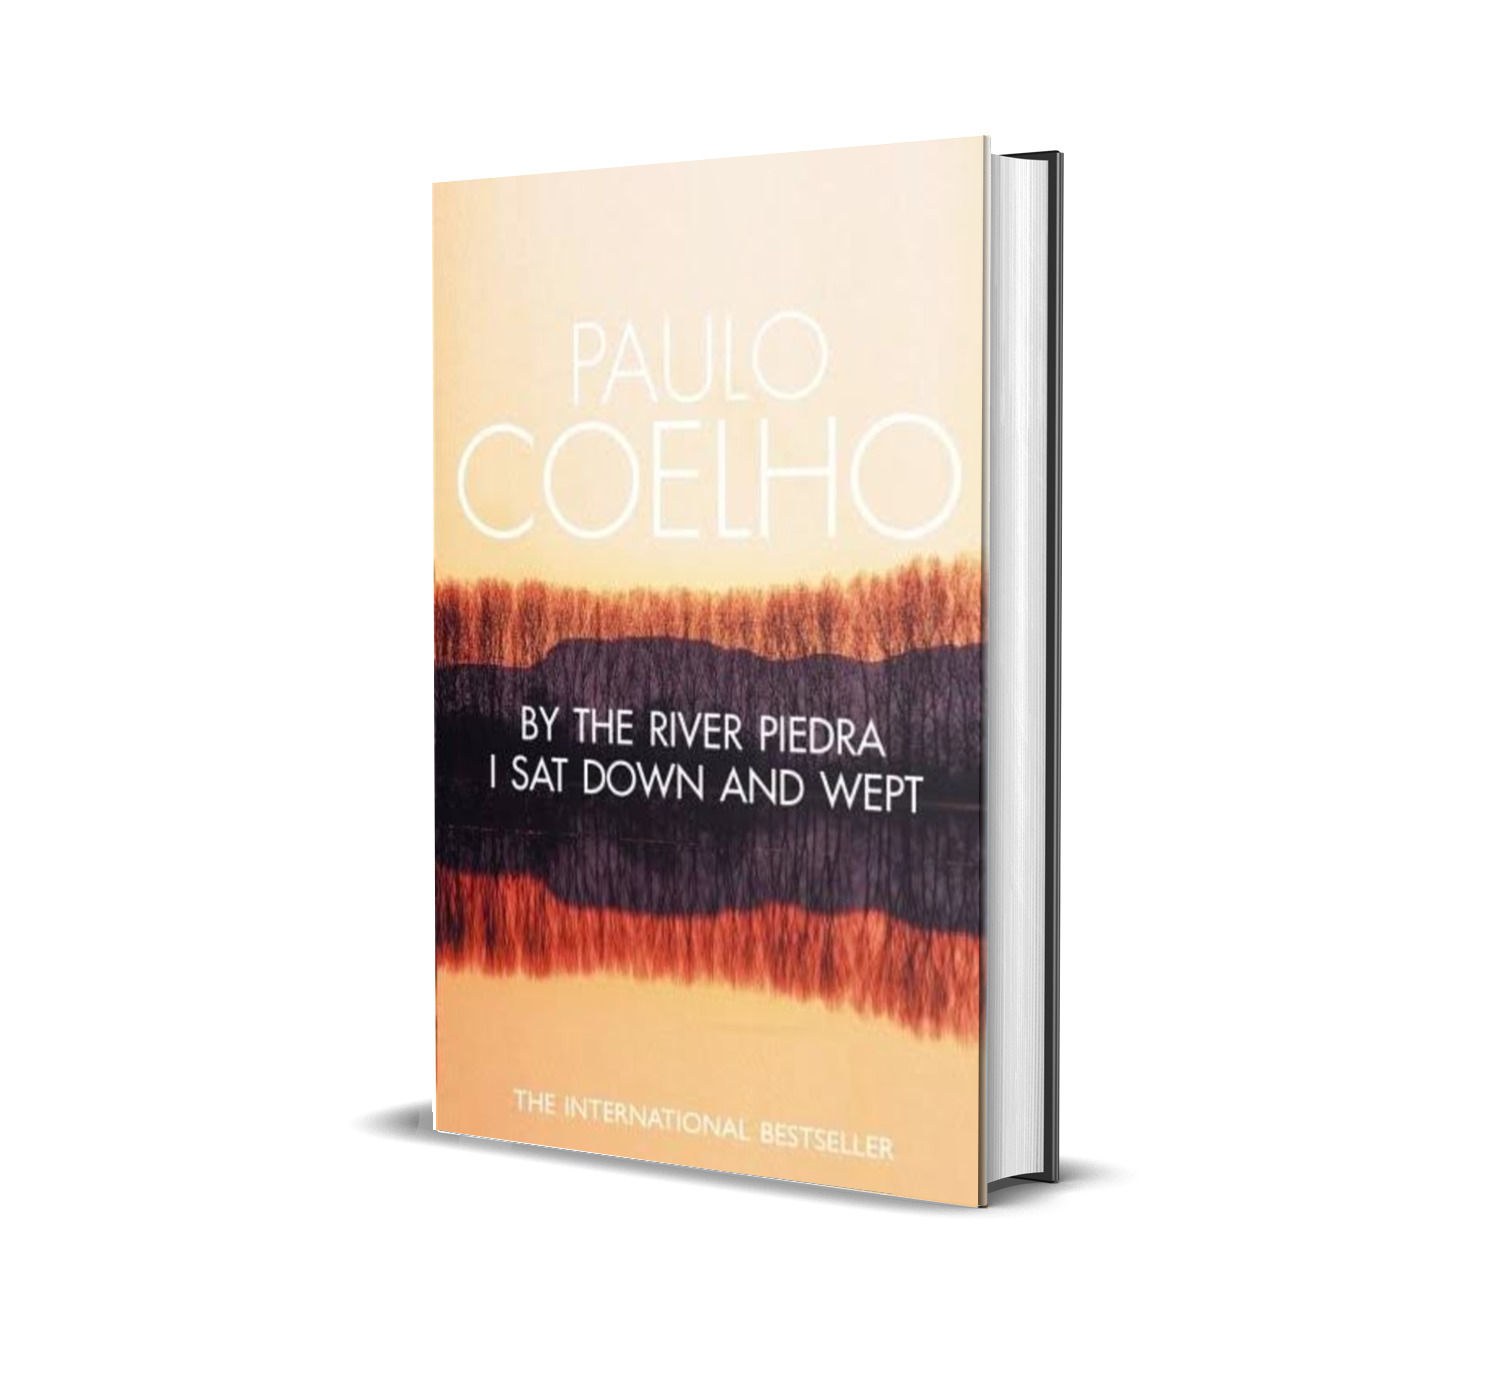 By the river Piedra I sat down and wept- Paulo Coelho